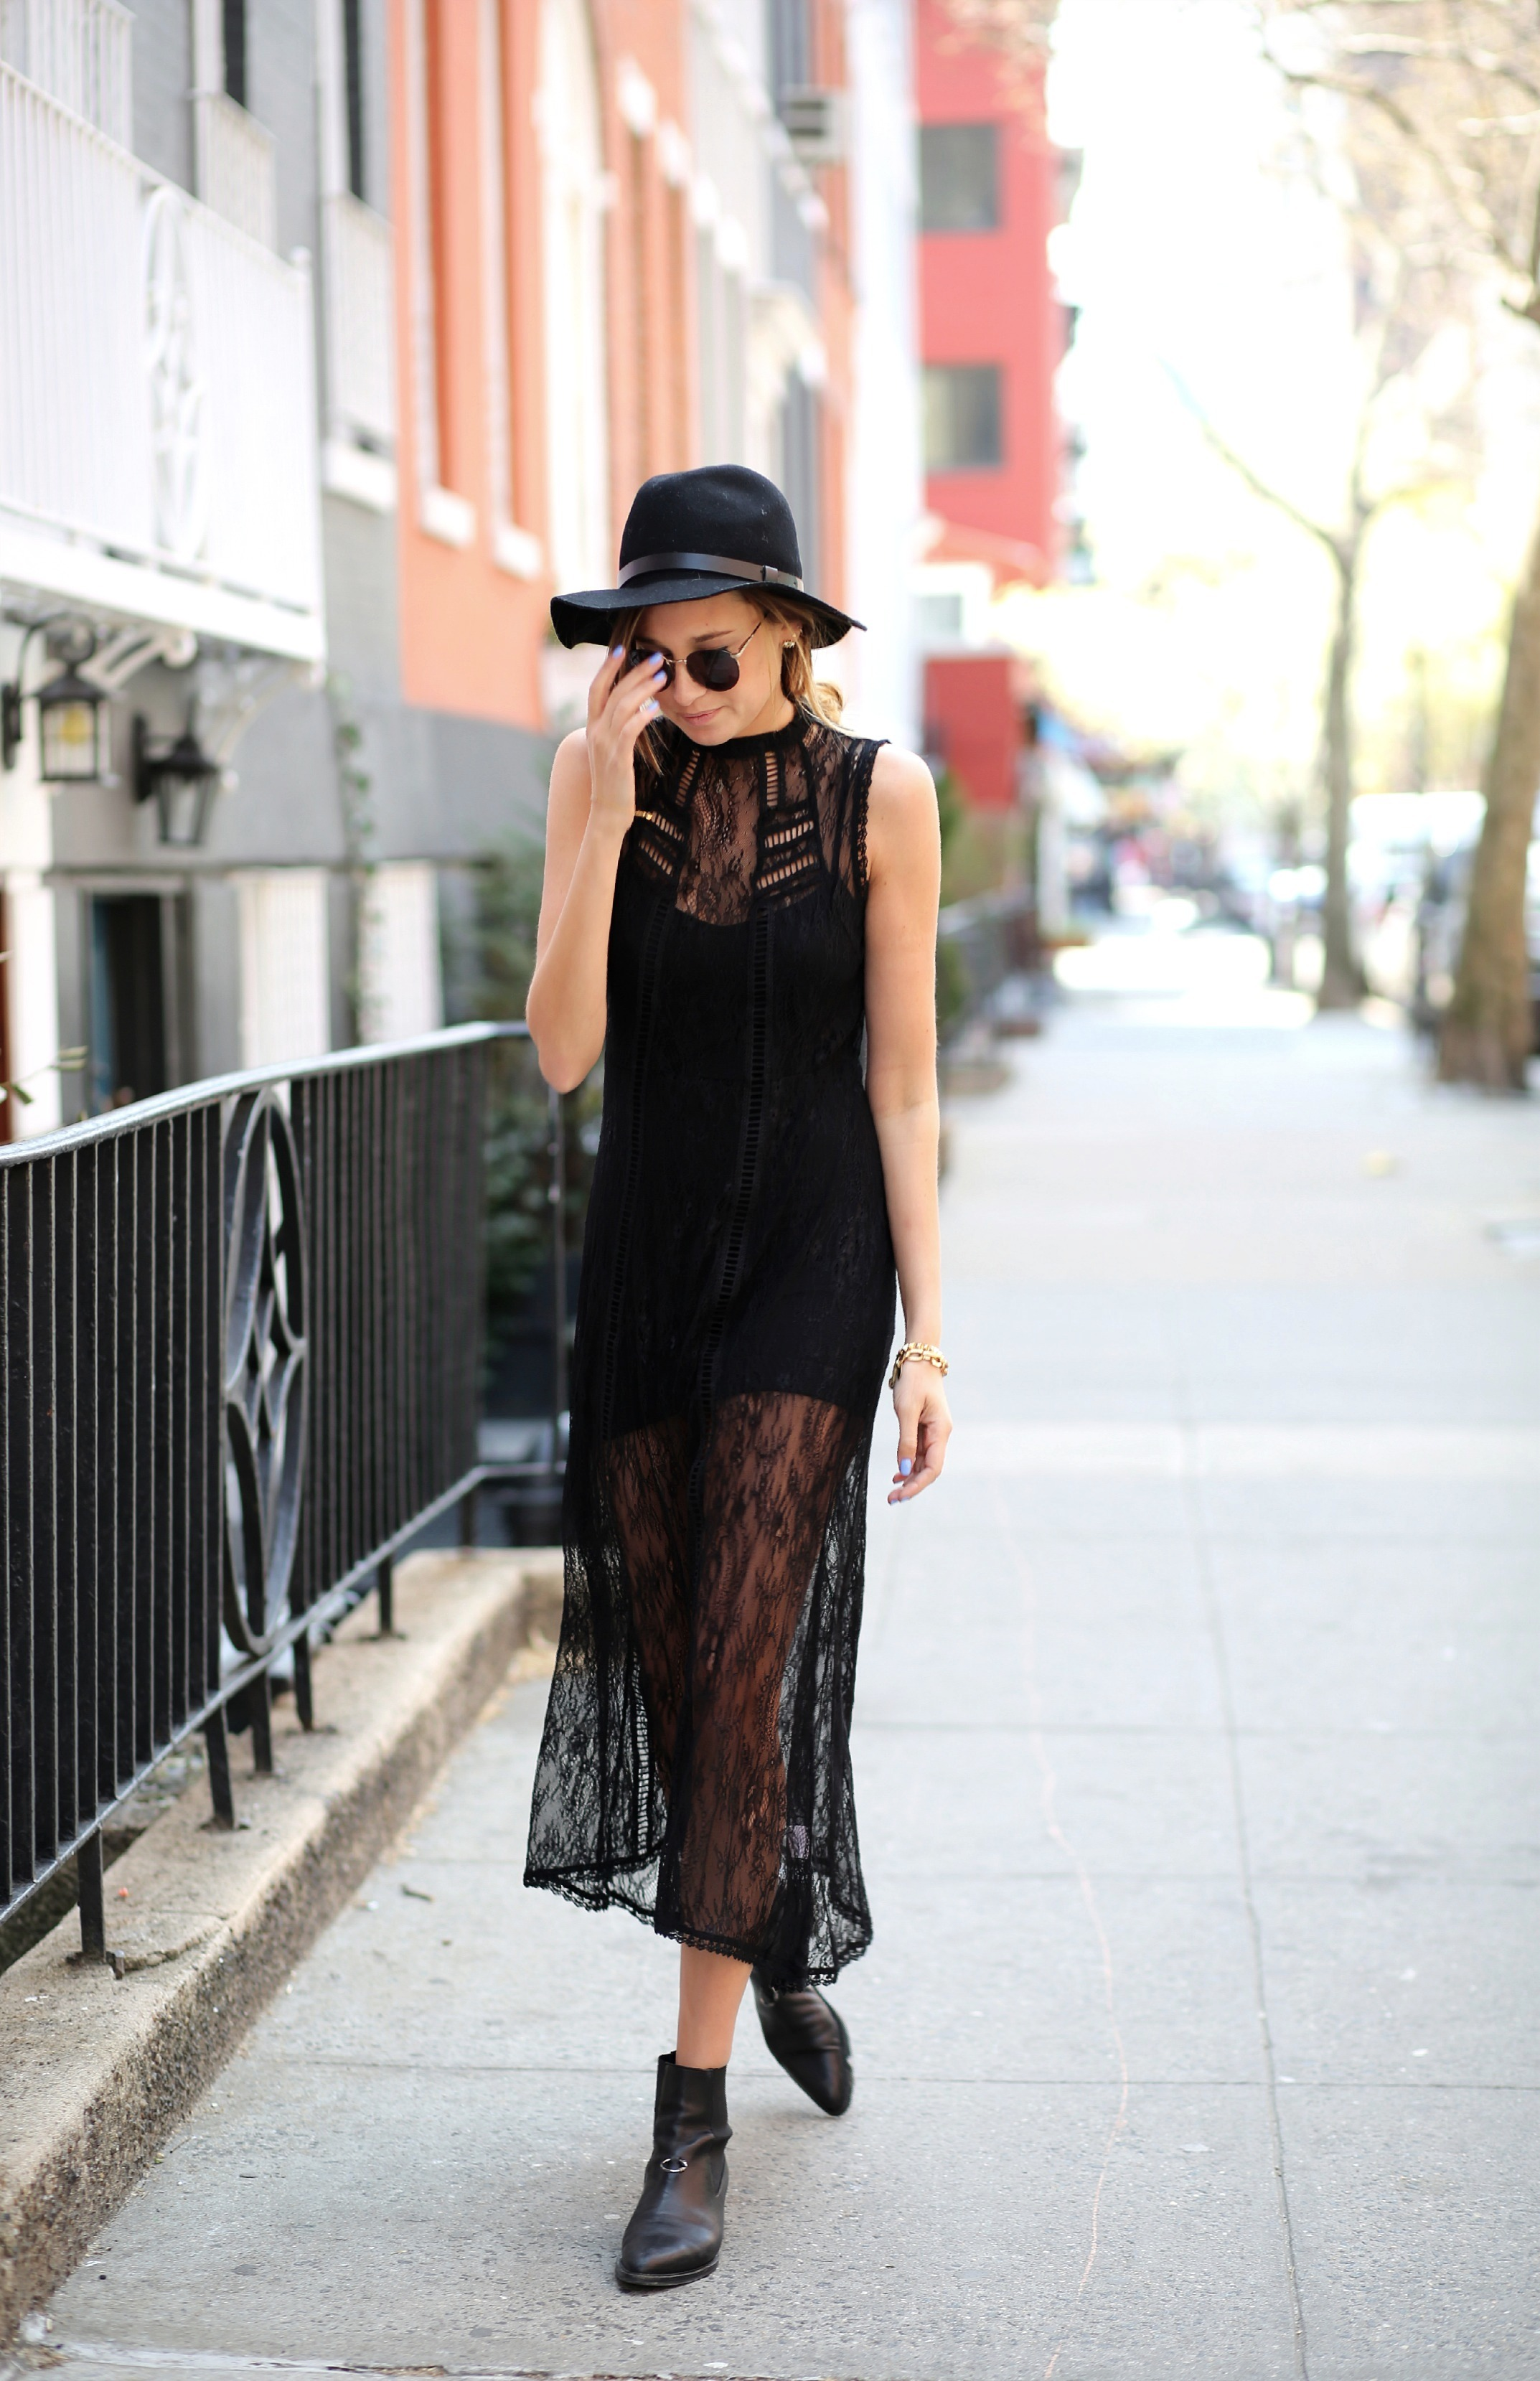 We Wore That Wearing A Black Lace Dress From Pixie Market And Matching Hat From TopShop